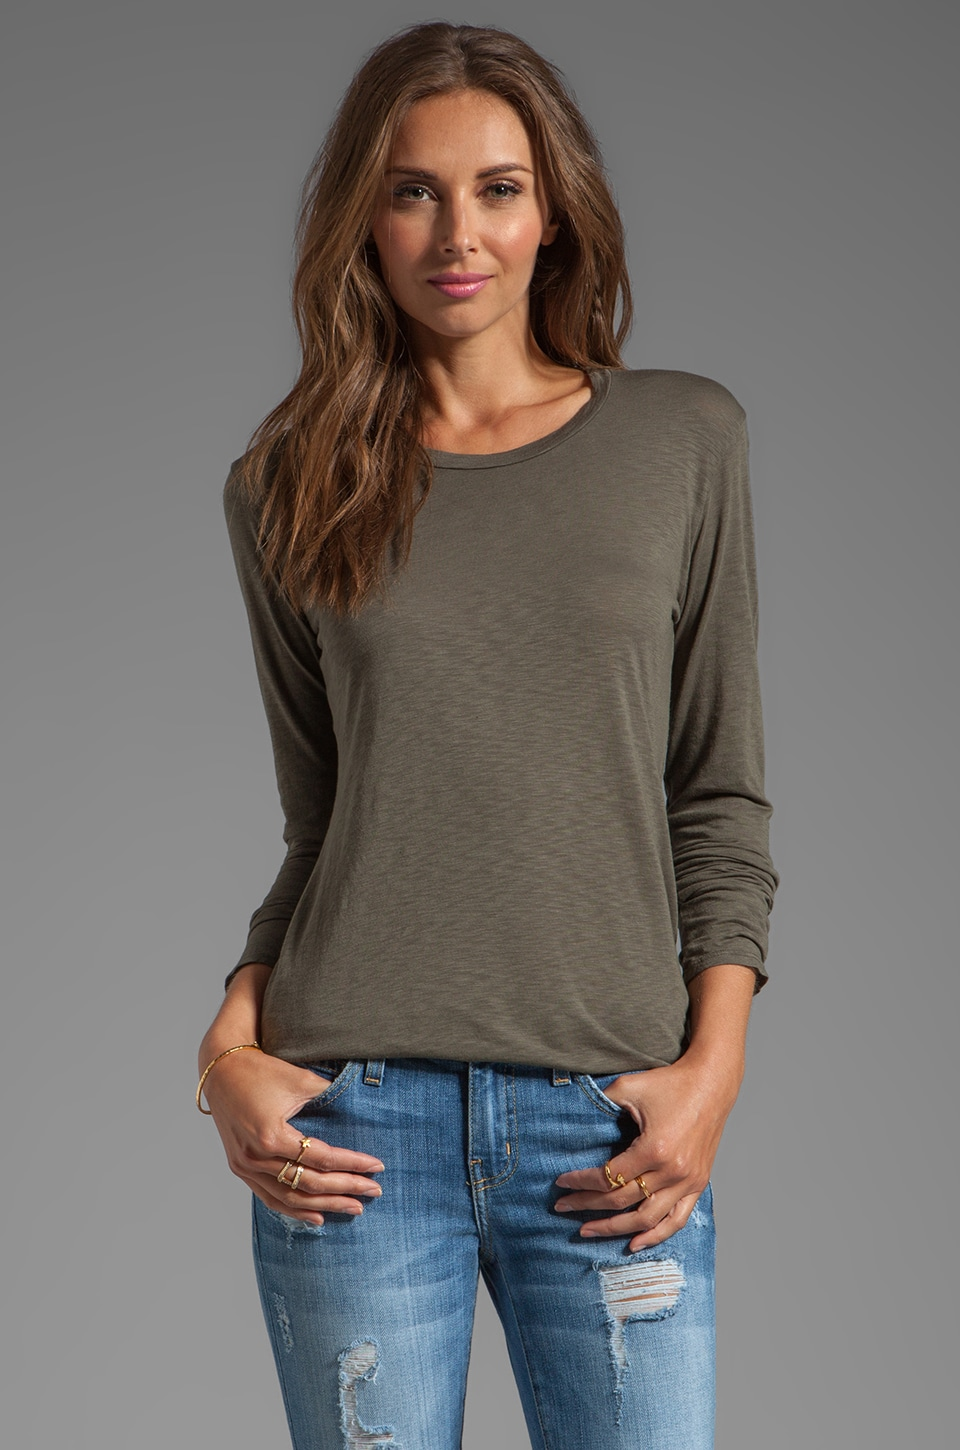 Velvet by Graham & Spencer Rhiannon Lux Slub Long Sleeve Tee in Safari